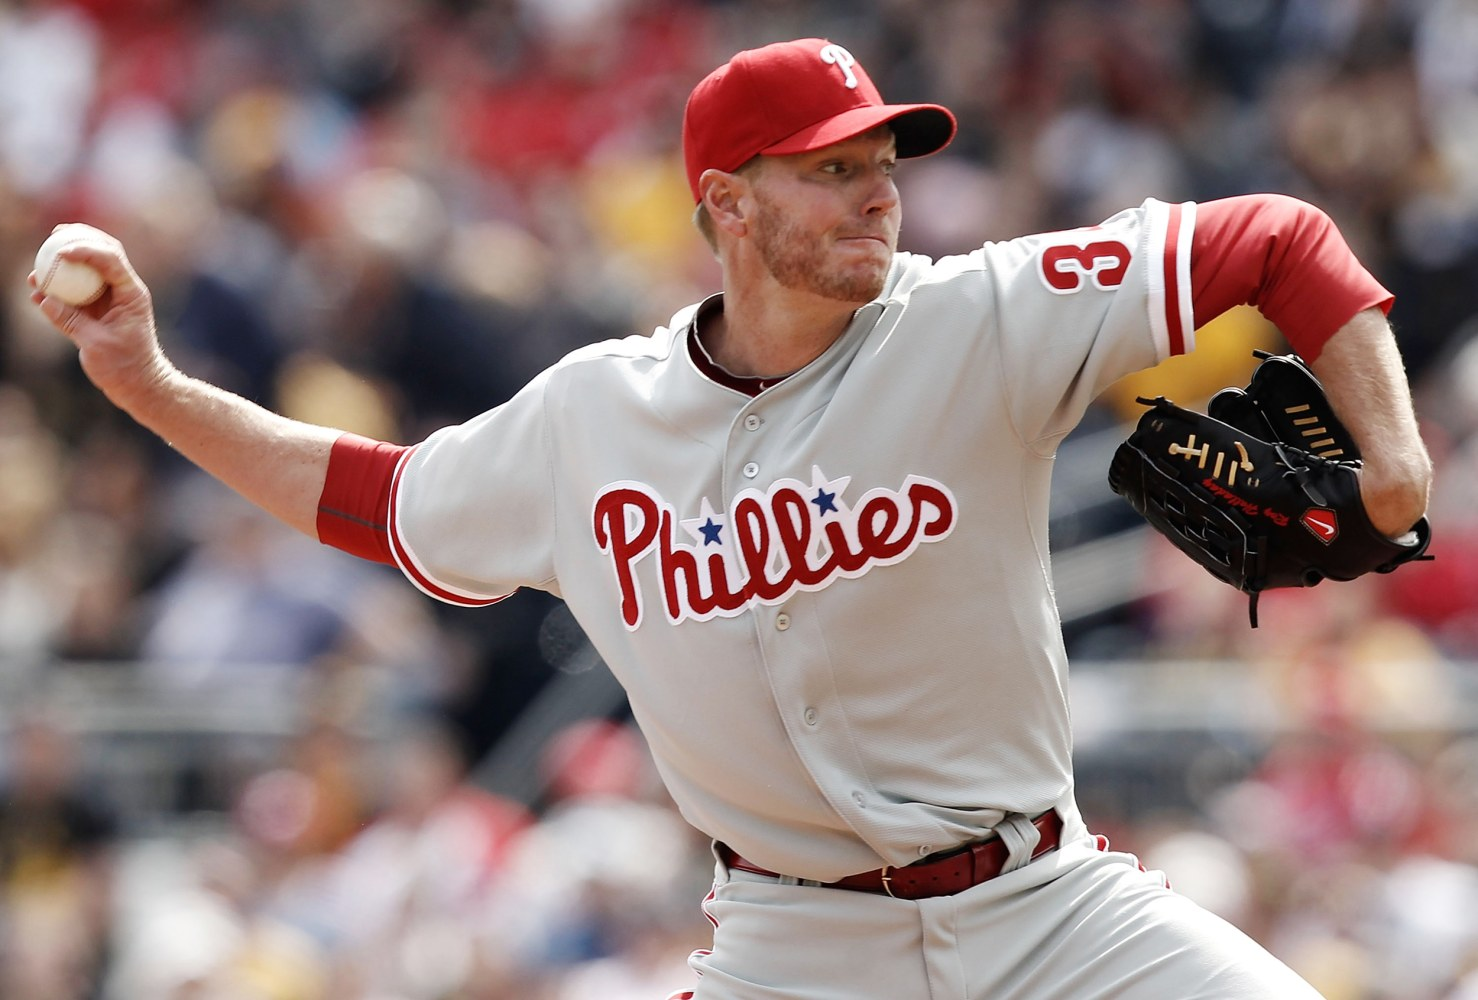 Ex-Syracuse Chiefs pitcher Roy Halladay dies in plane crash